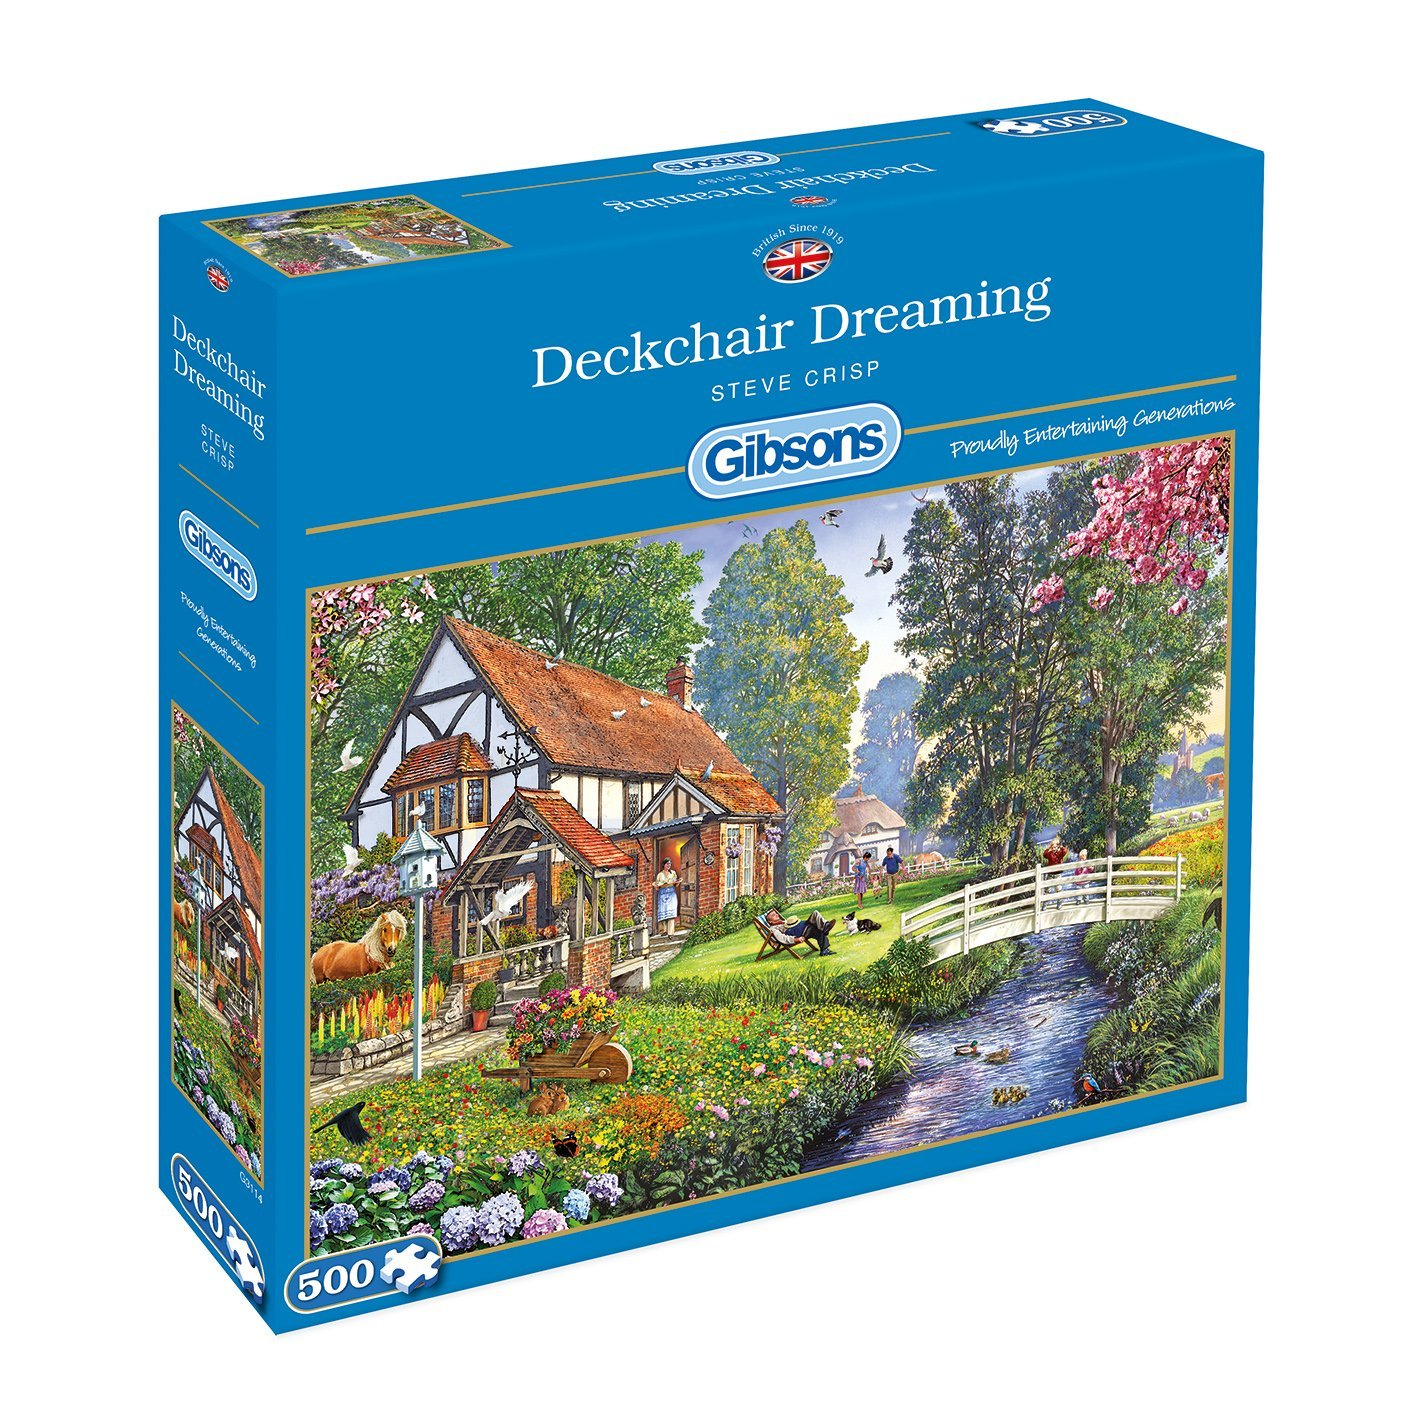 Deckchair Dreaming, 500pc puzzle